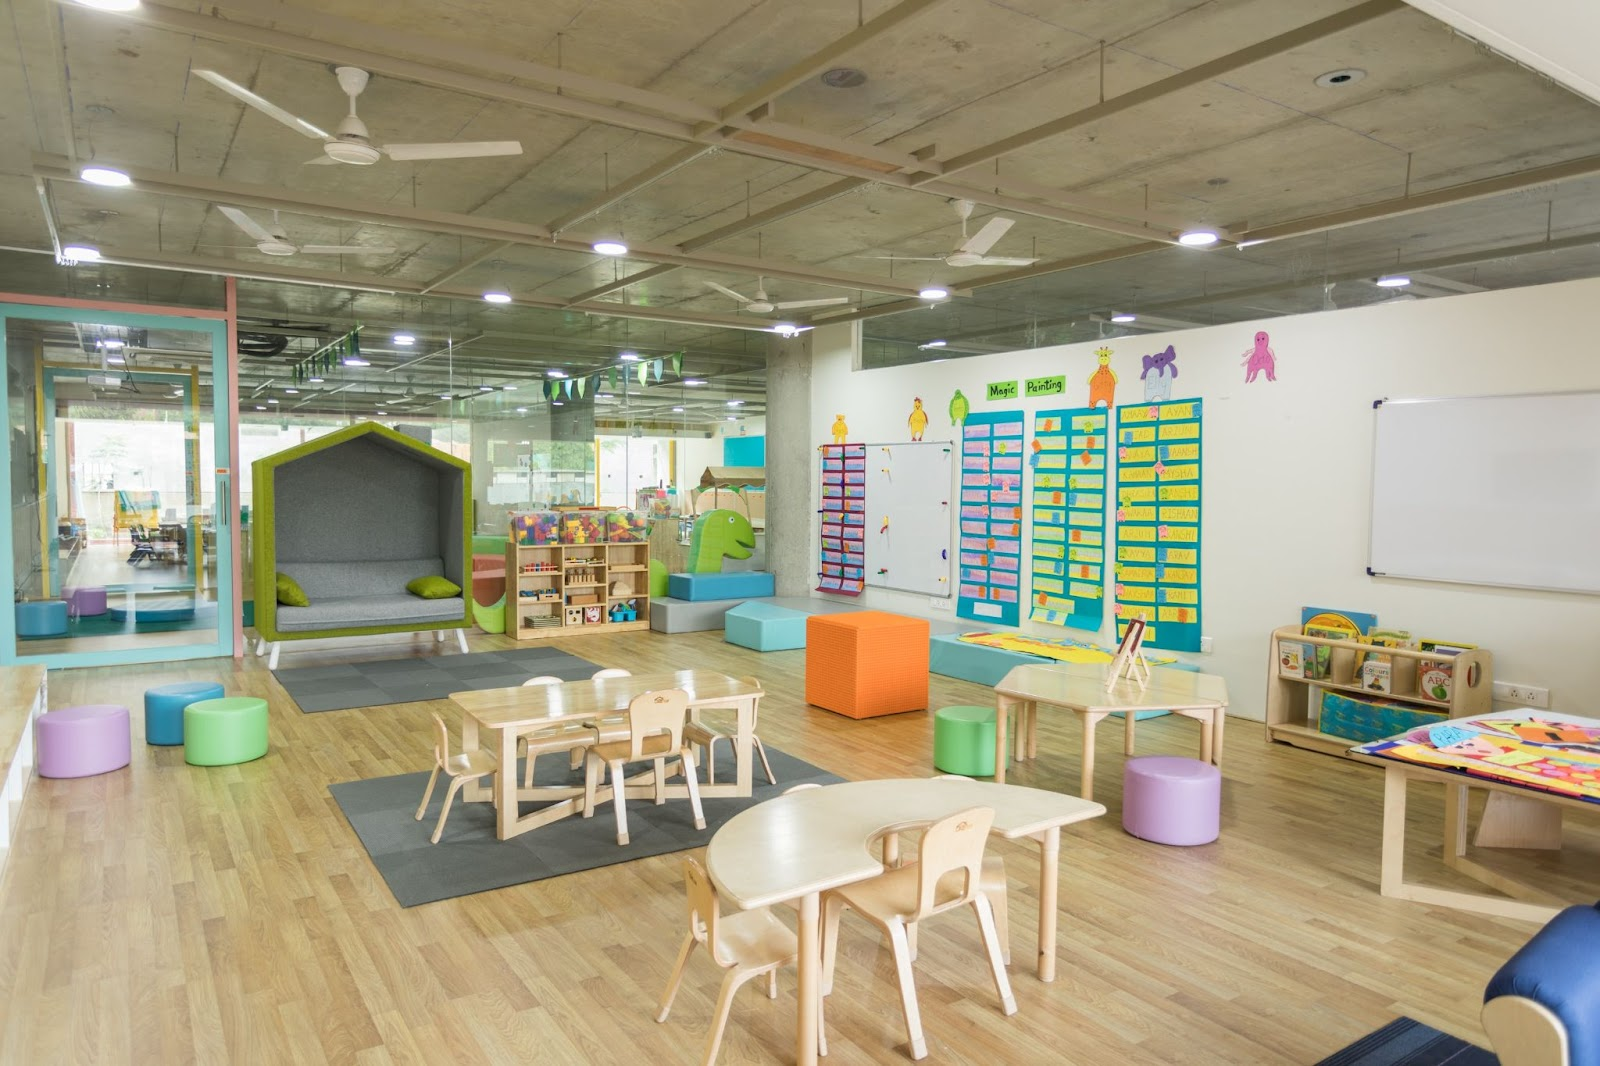 Classroom inspired by the Montessori method